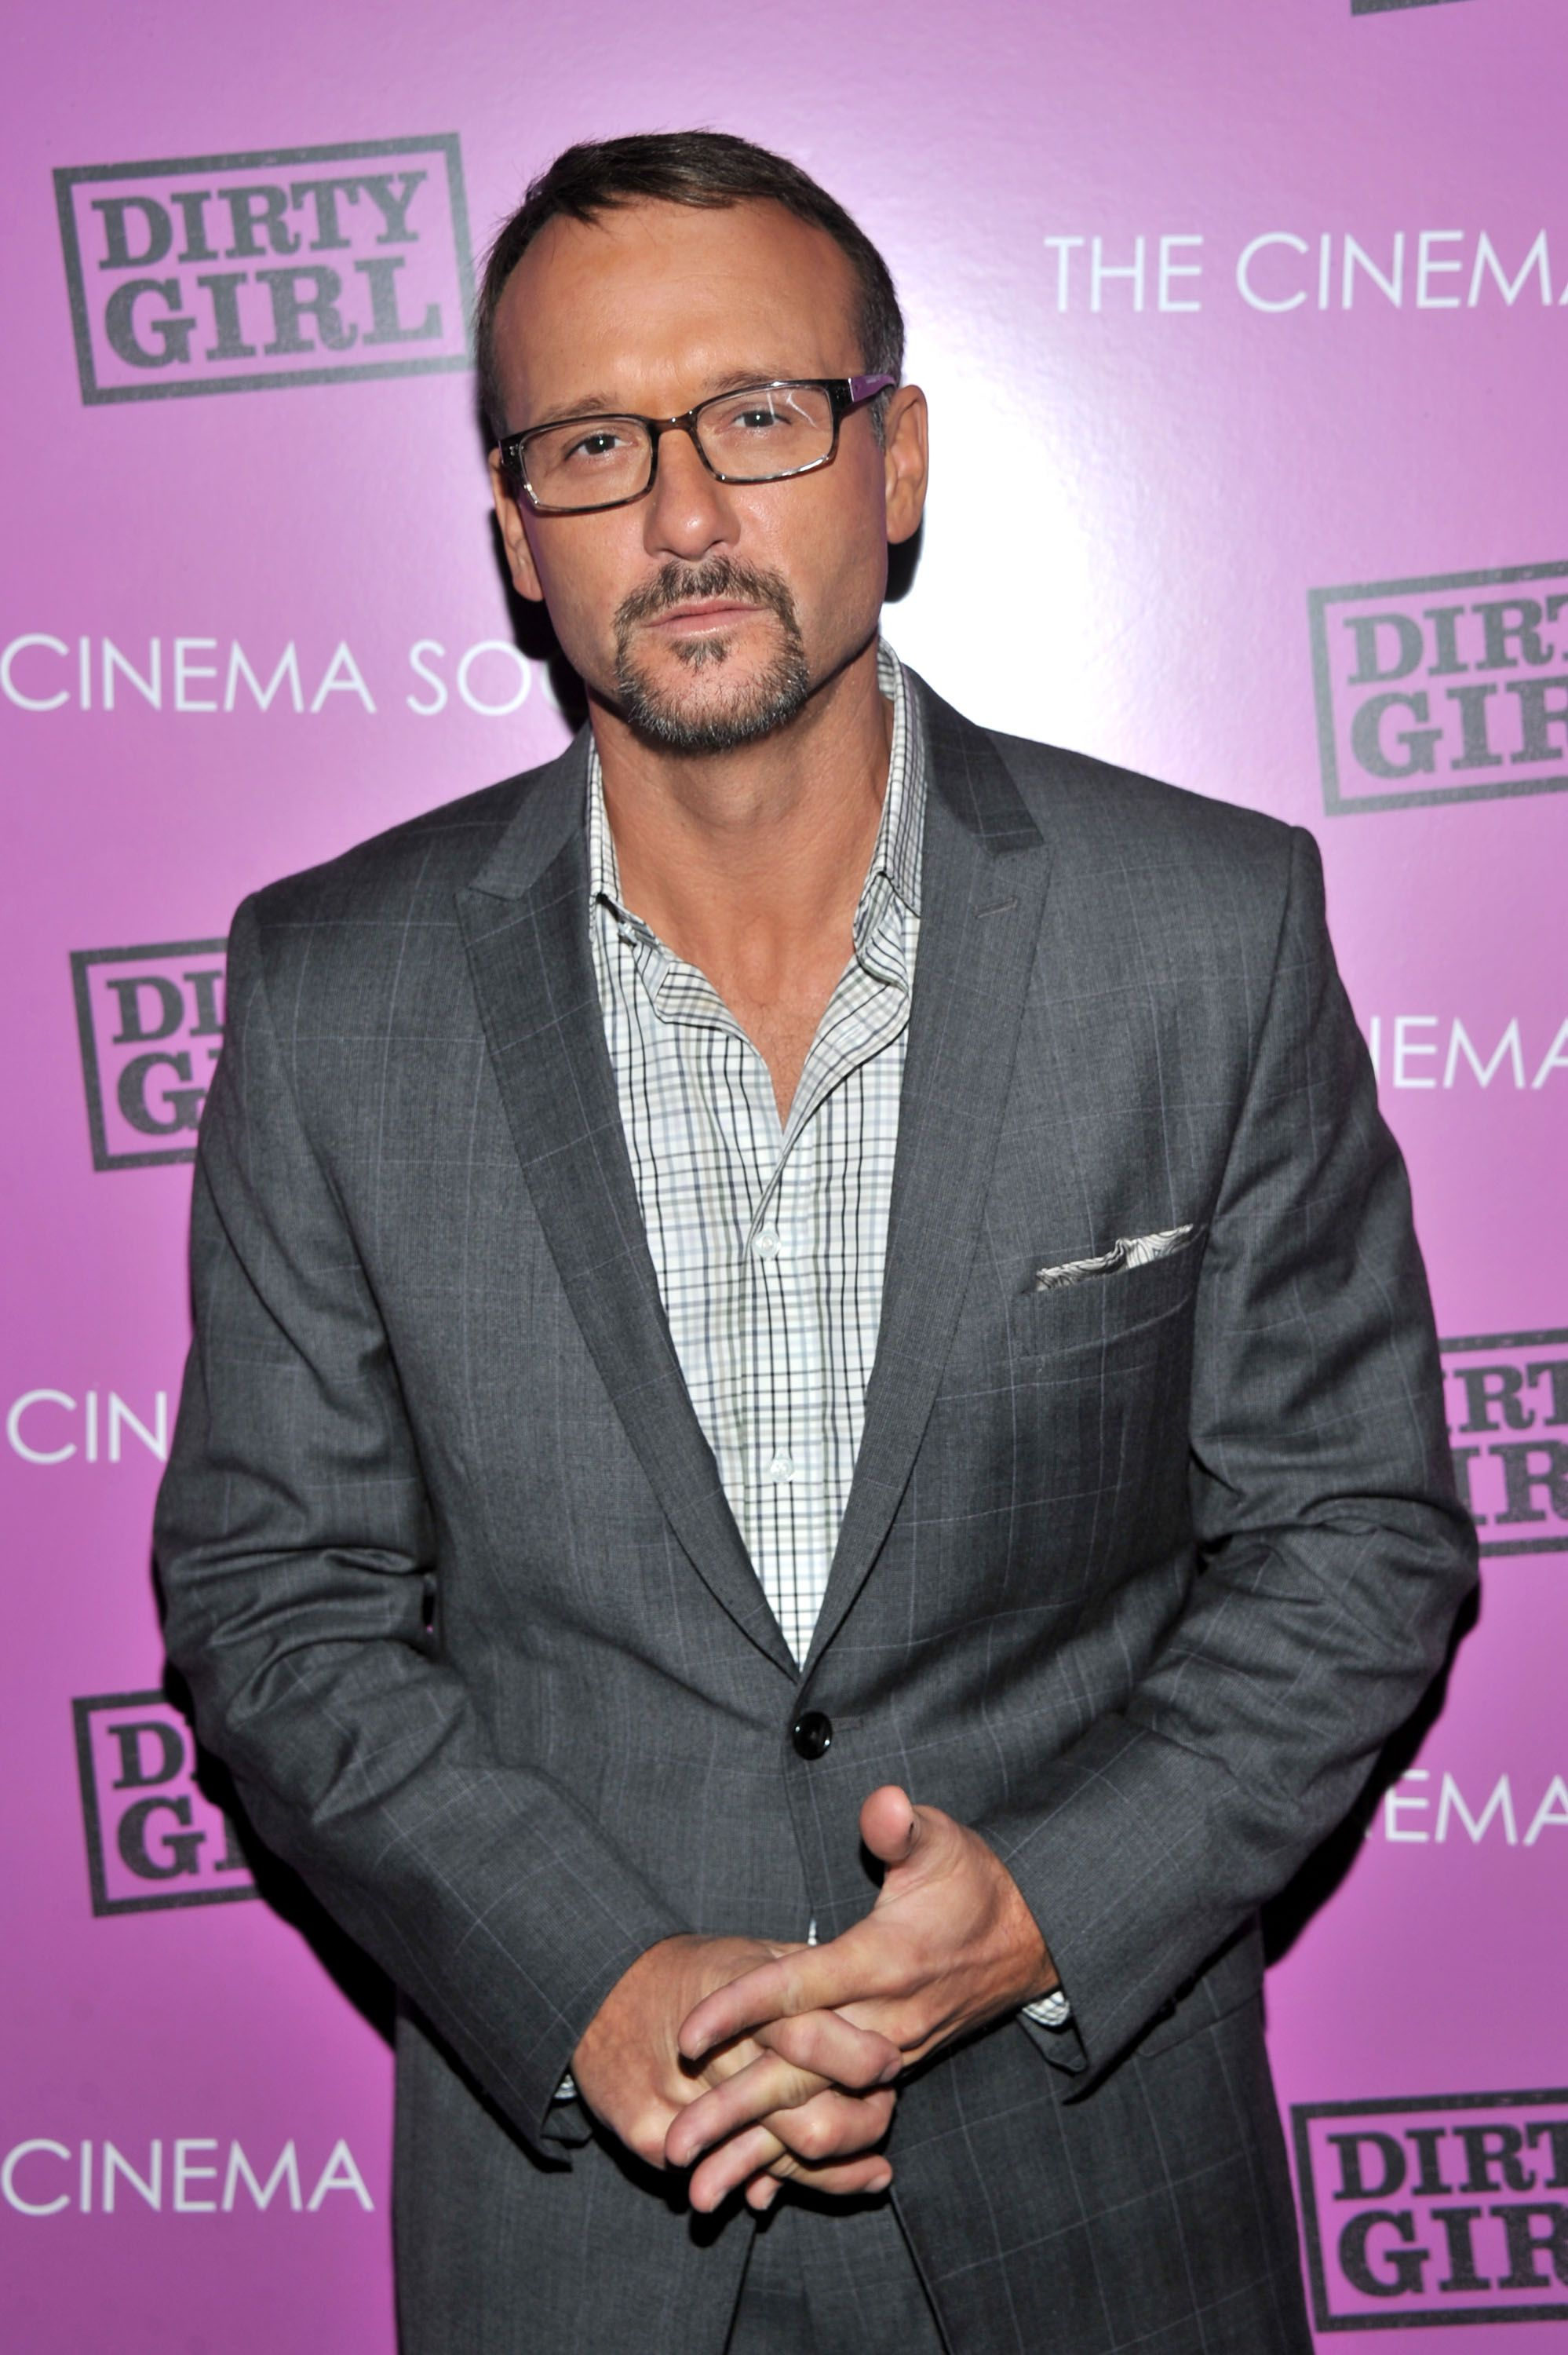 """Tim McGraw at the screening of """"Dirty Girl"""" at Landmark's Sunshine Cinema on October 3, 2011 